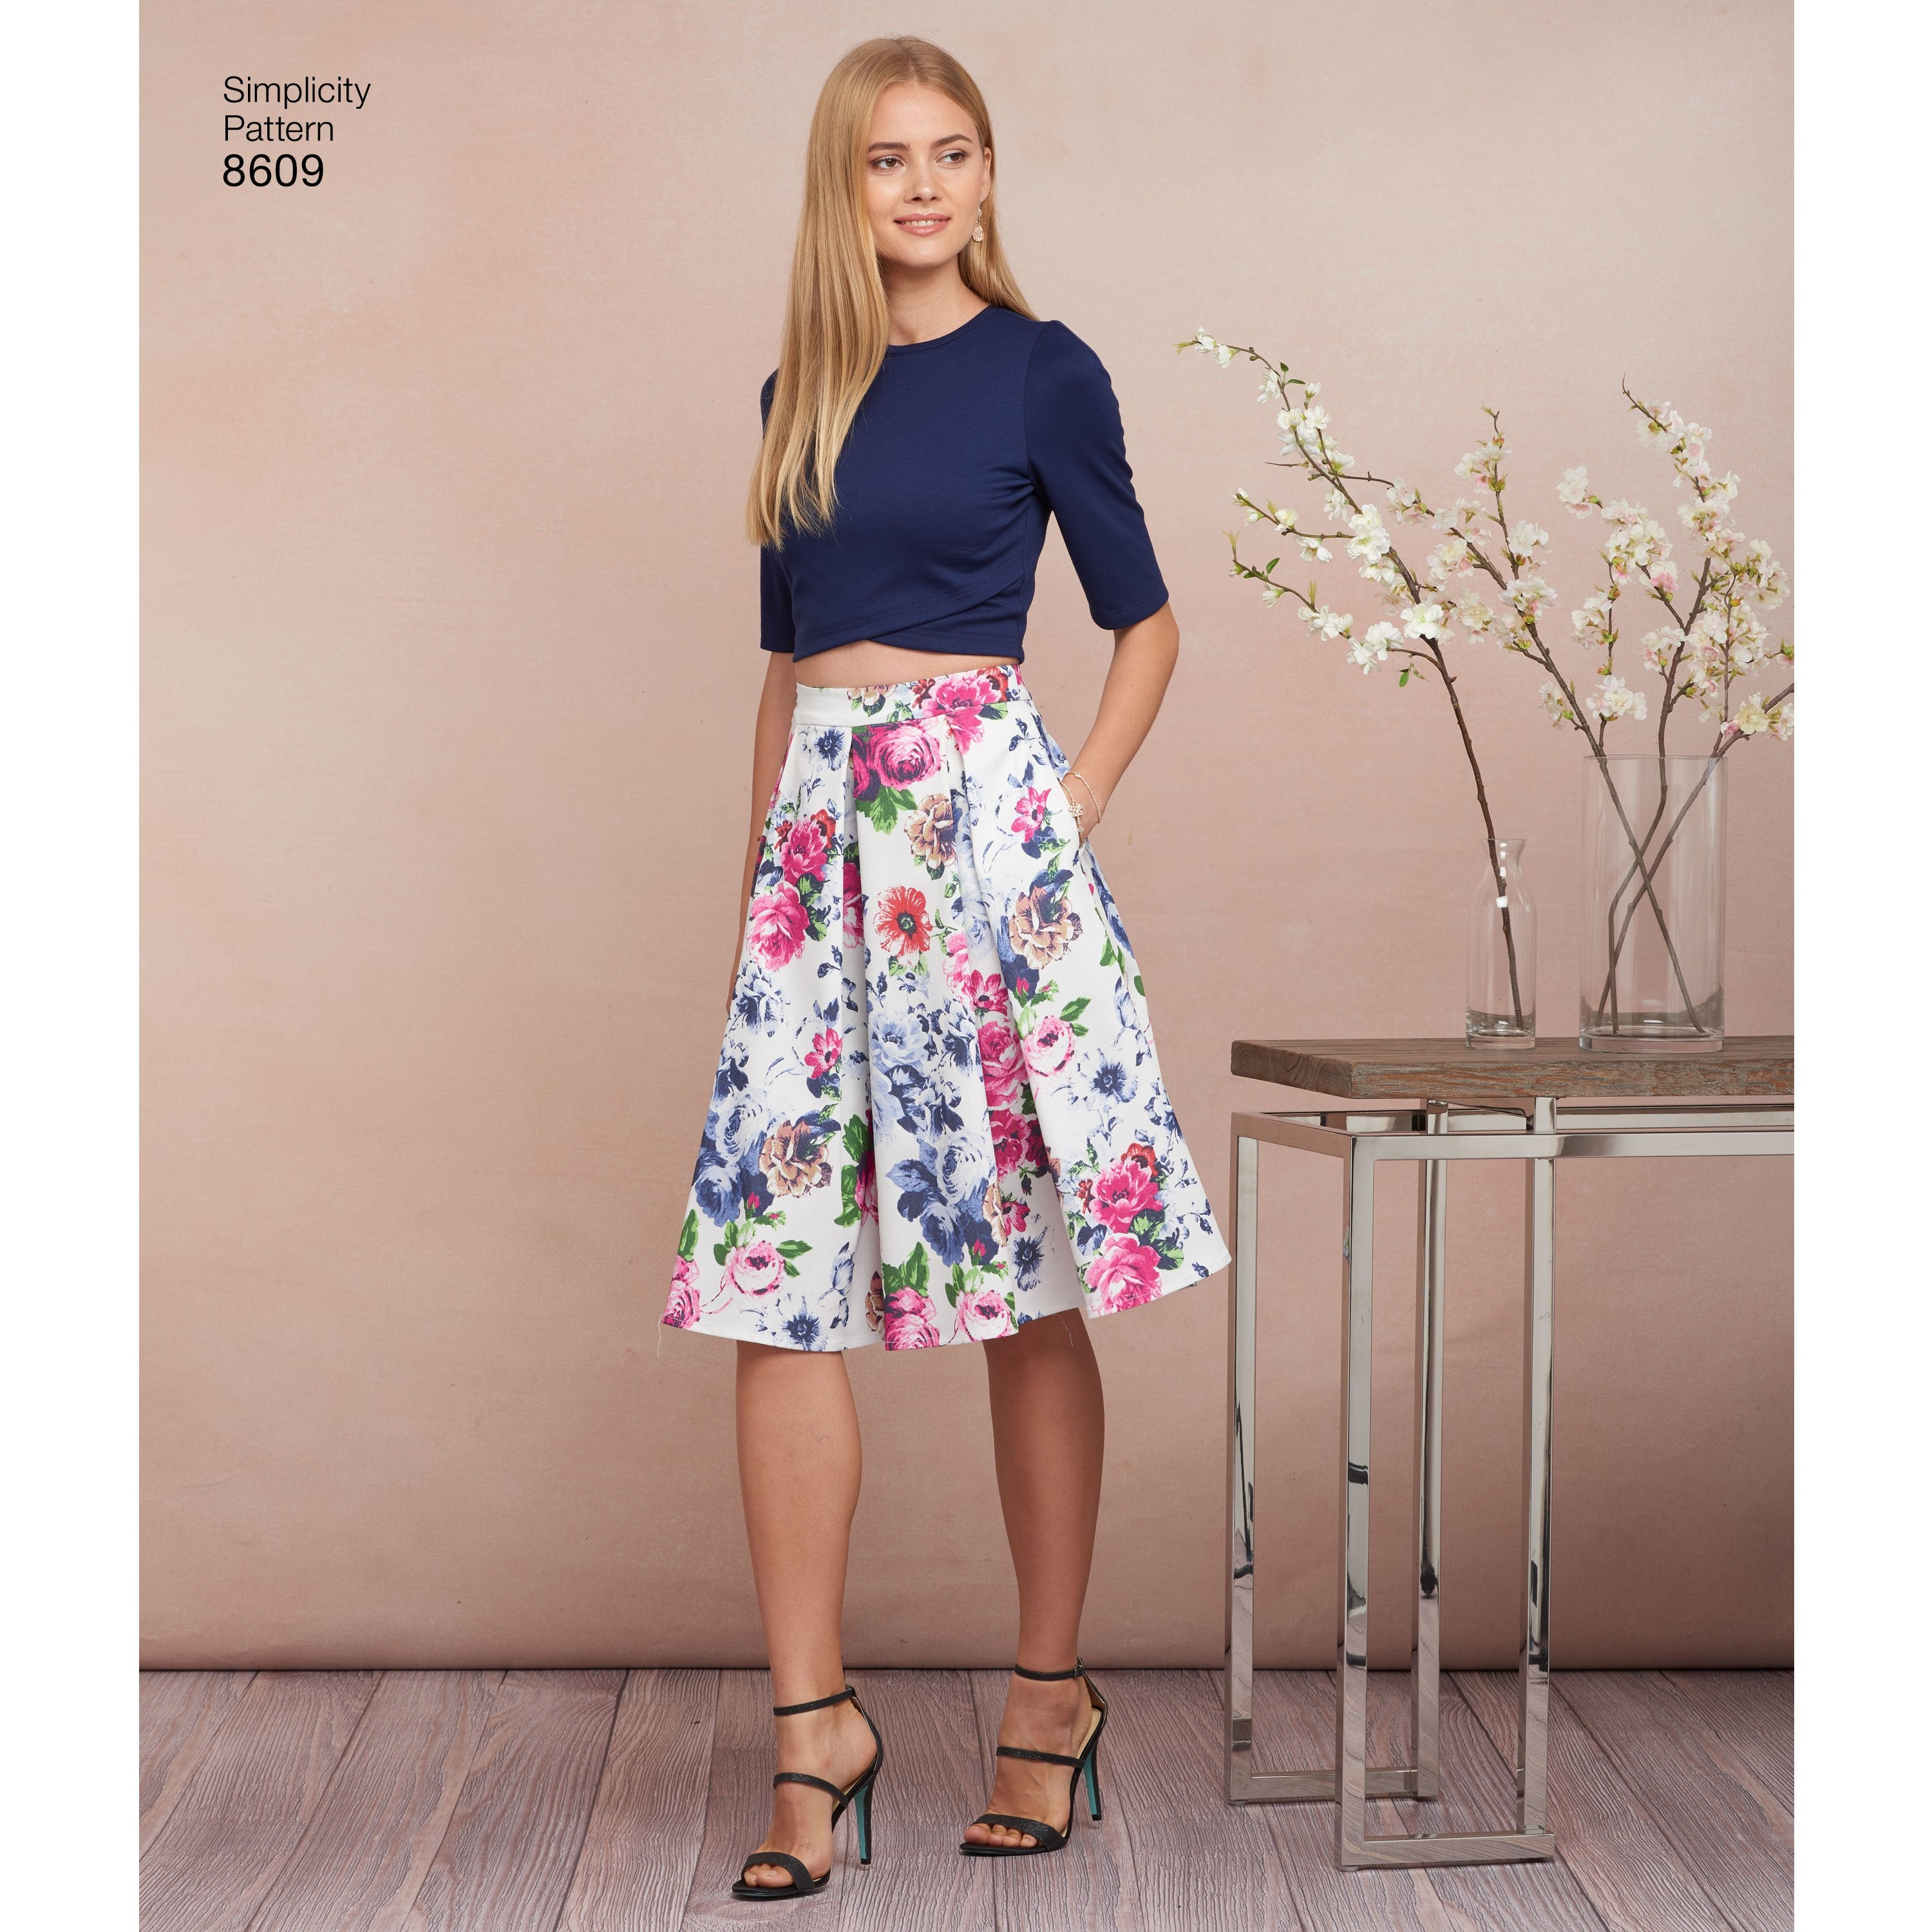 S8609 Skirts and Knit Tops Patterns